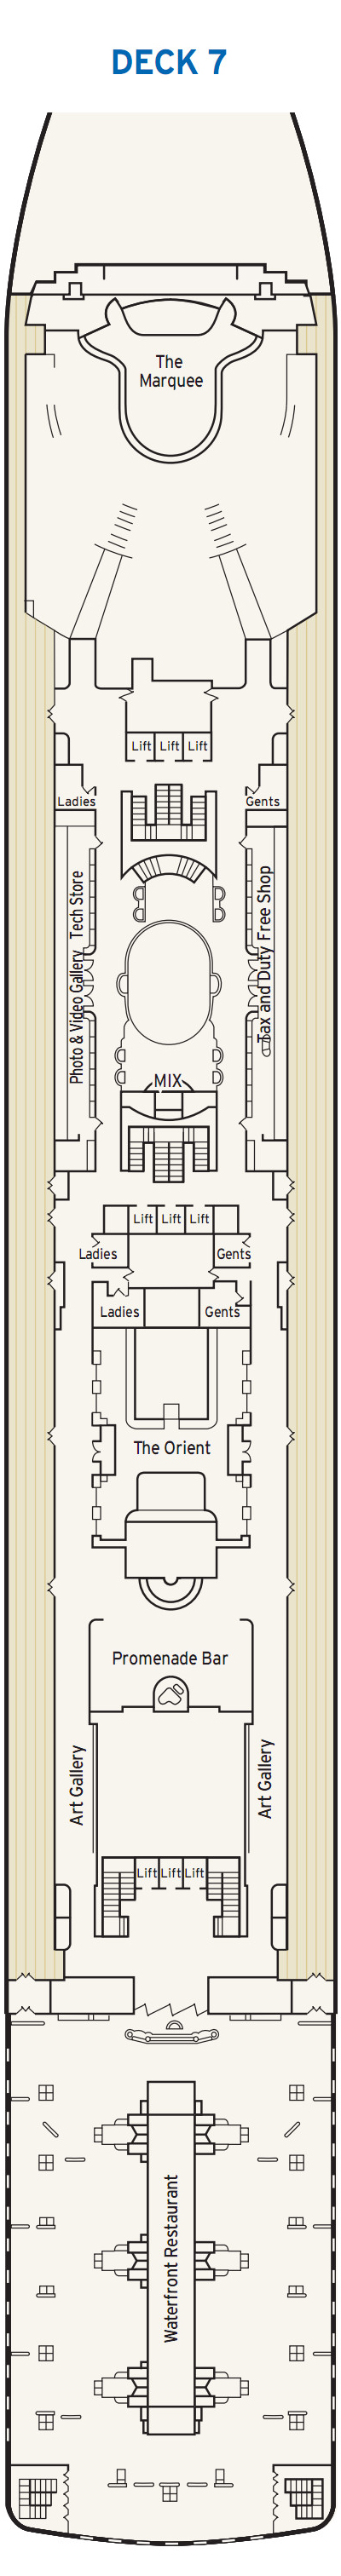 P&O - Pacific Dawn Promenade Deck 7 layout